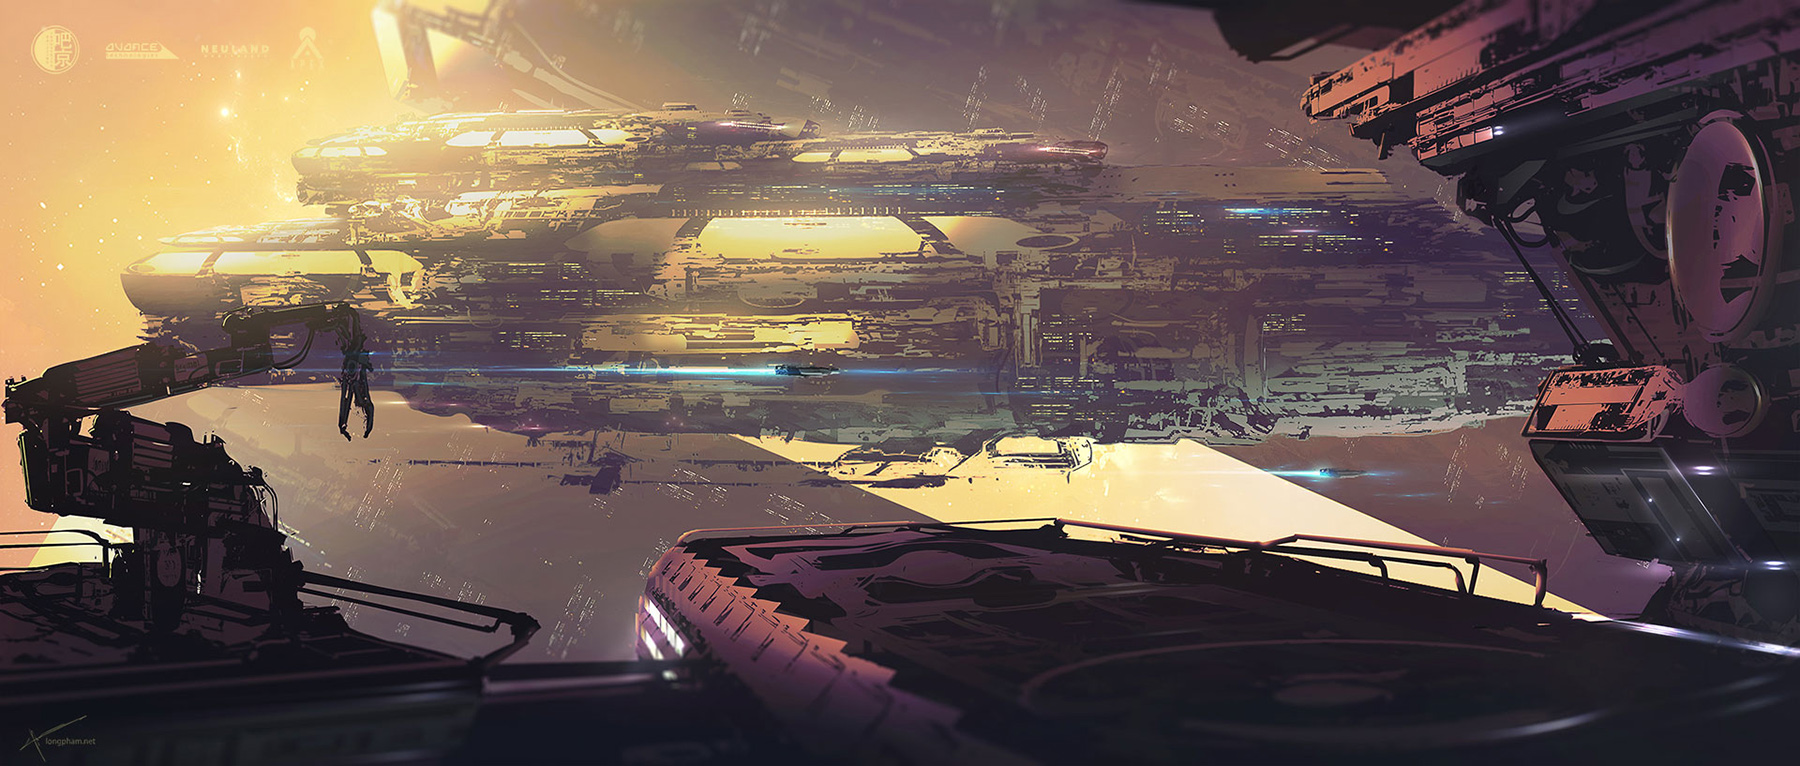 Concept ships spaceship art by long pham for Space concept